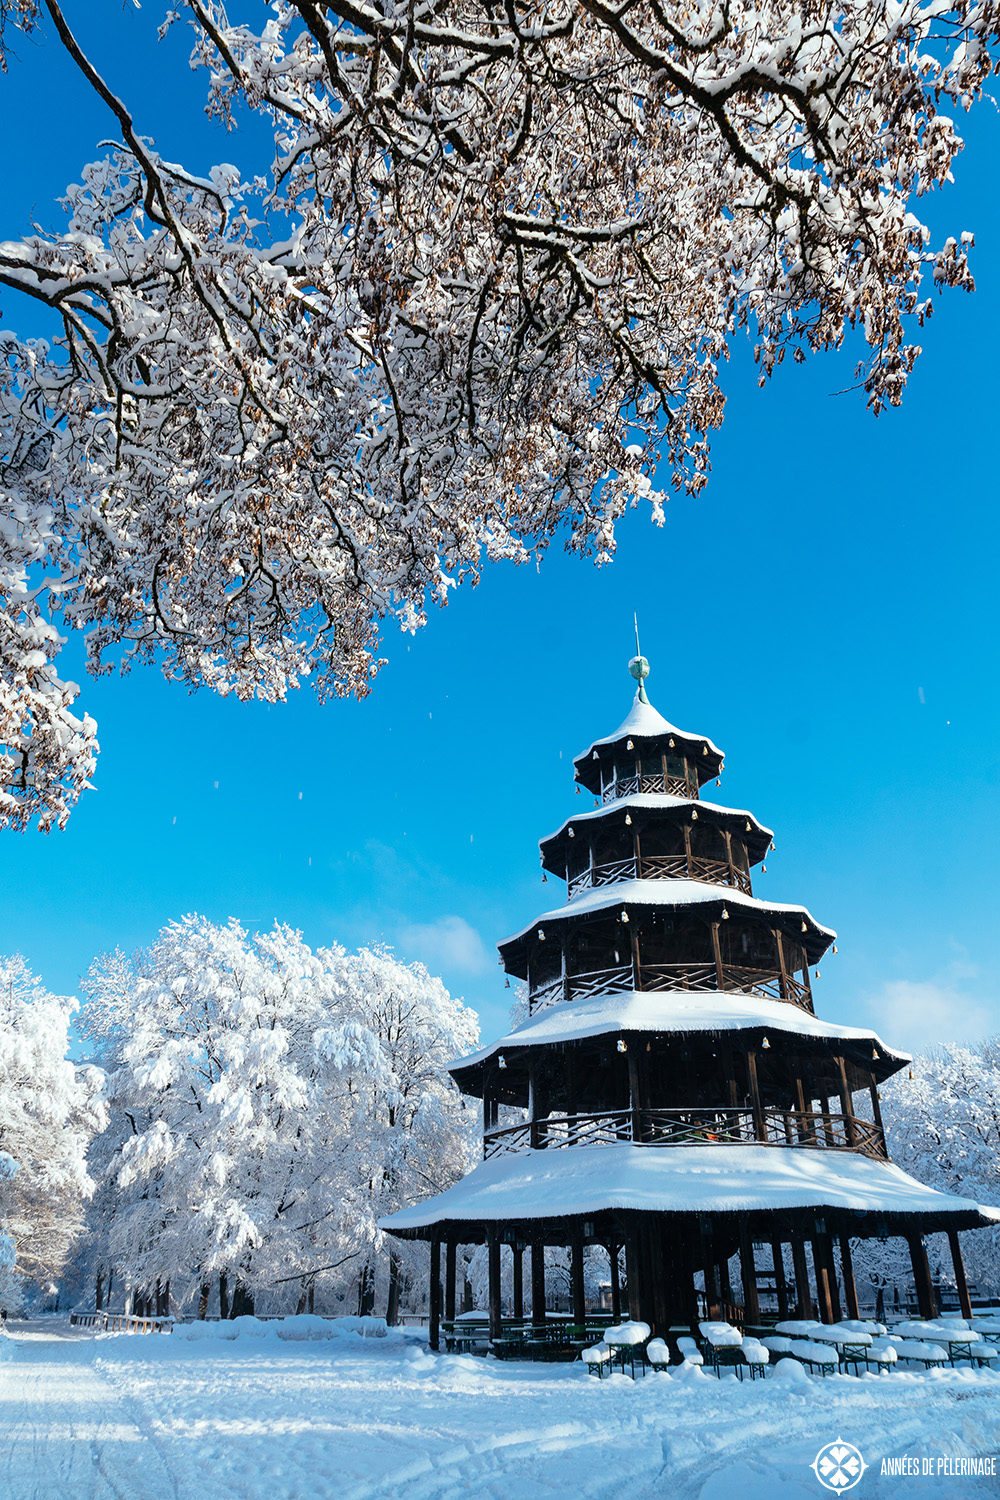 Chinese Tower in the middle of the Englische Garten in Munich in Winter